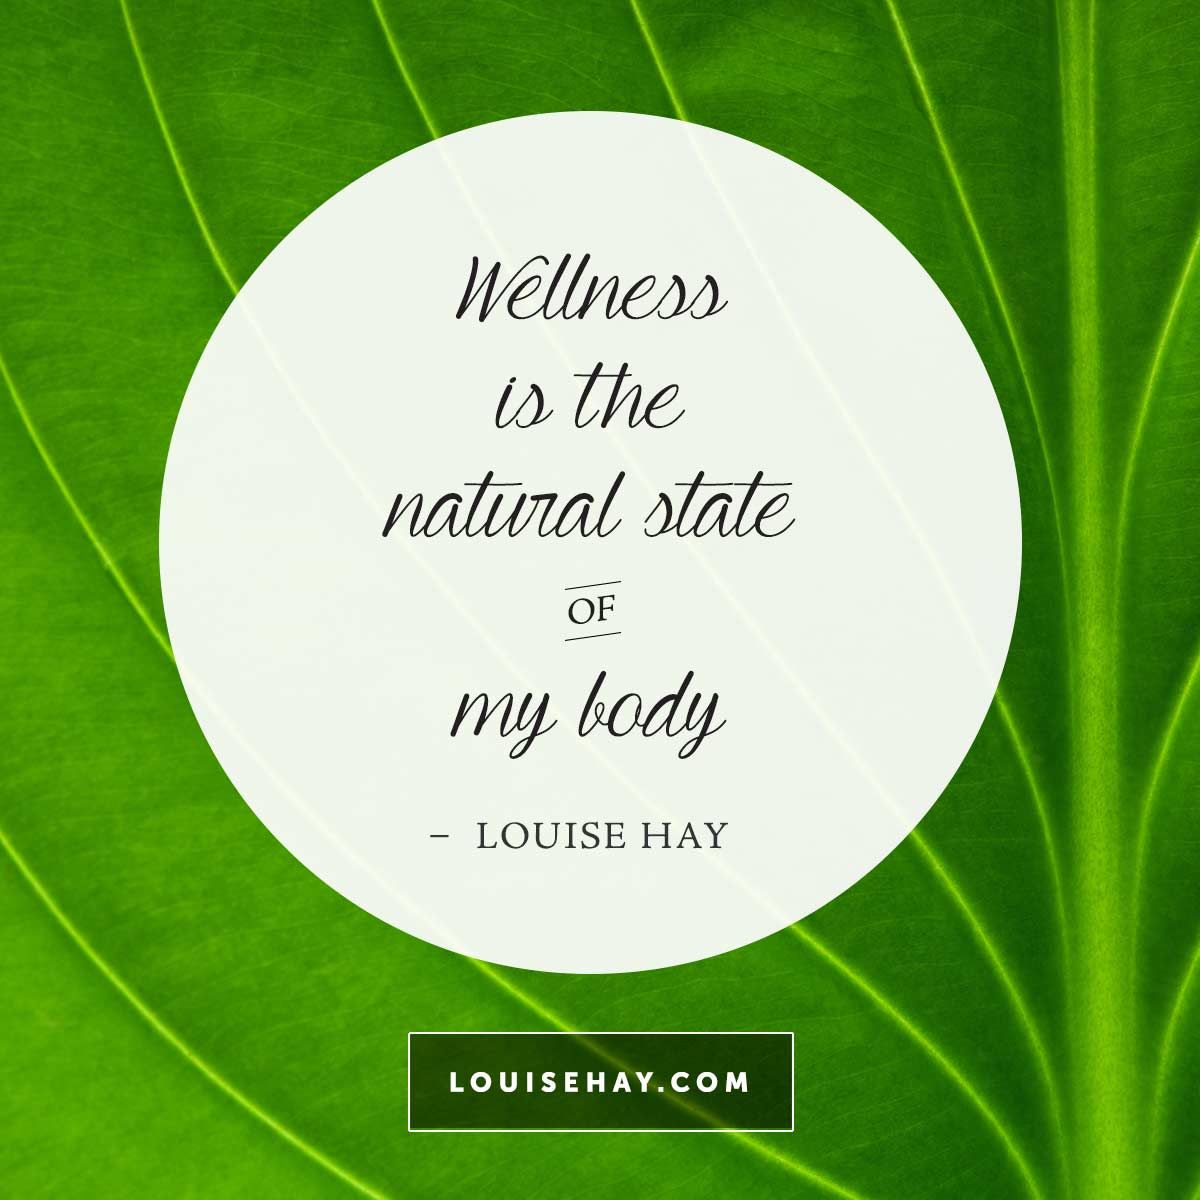 Wellness is the natural state of my body I believe in perfect health